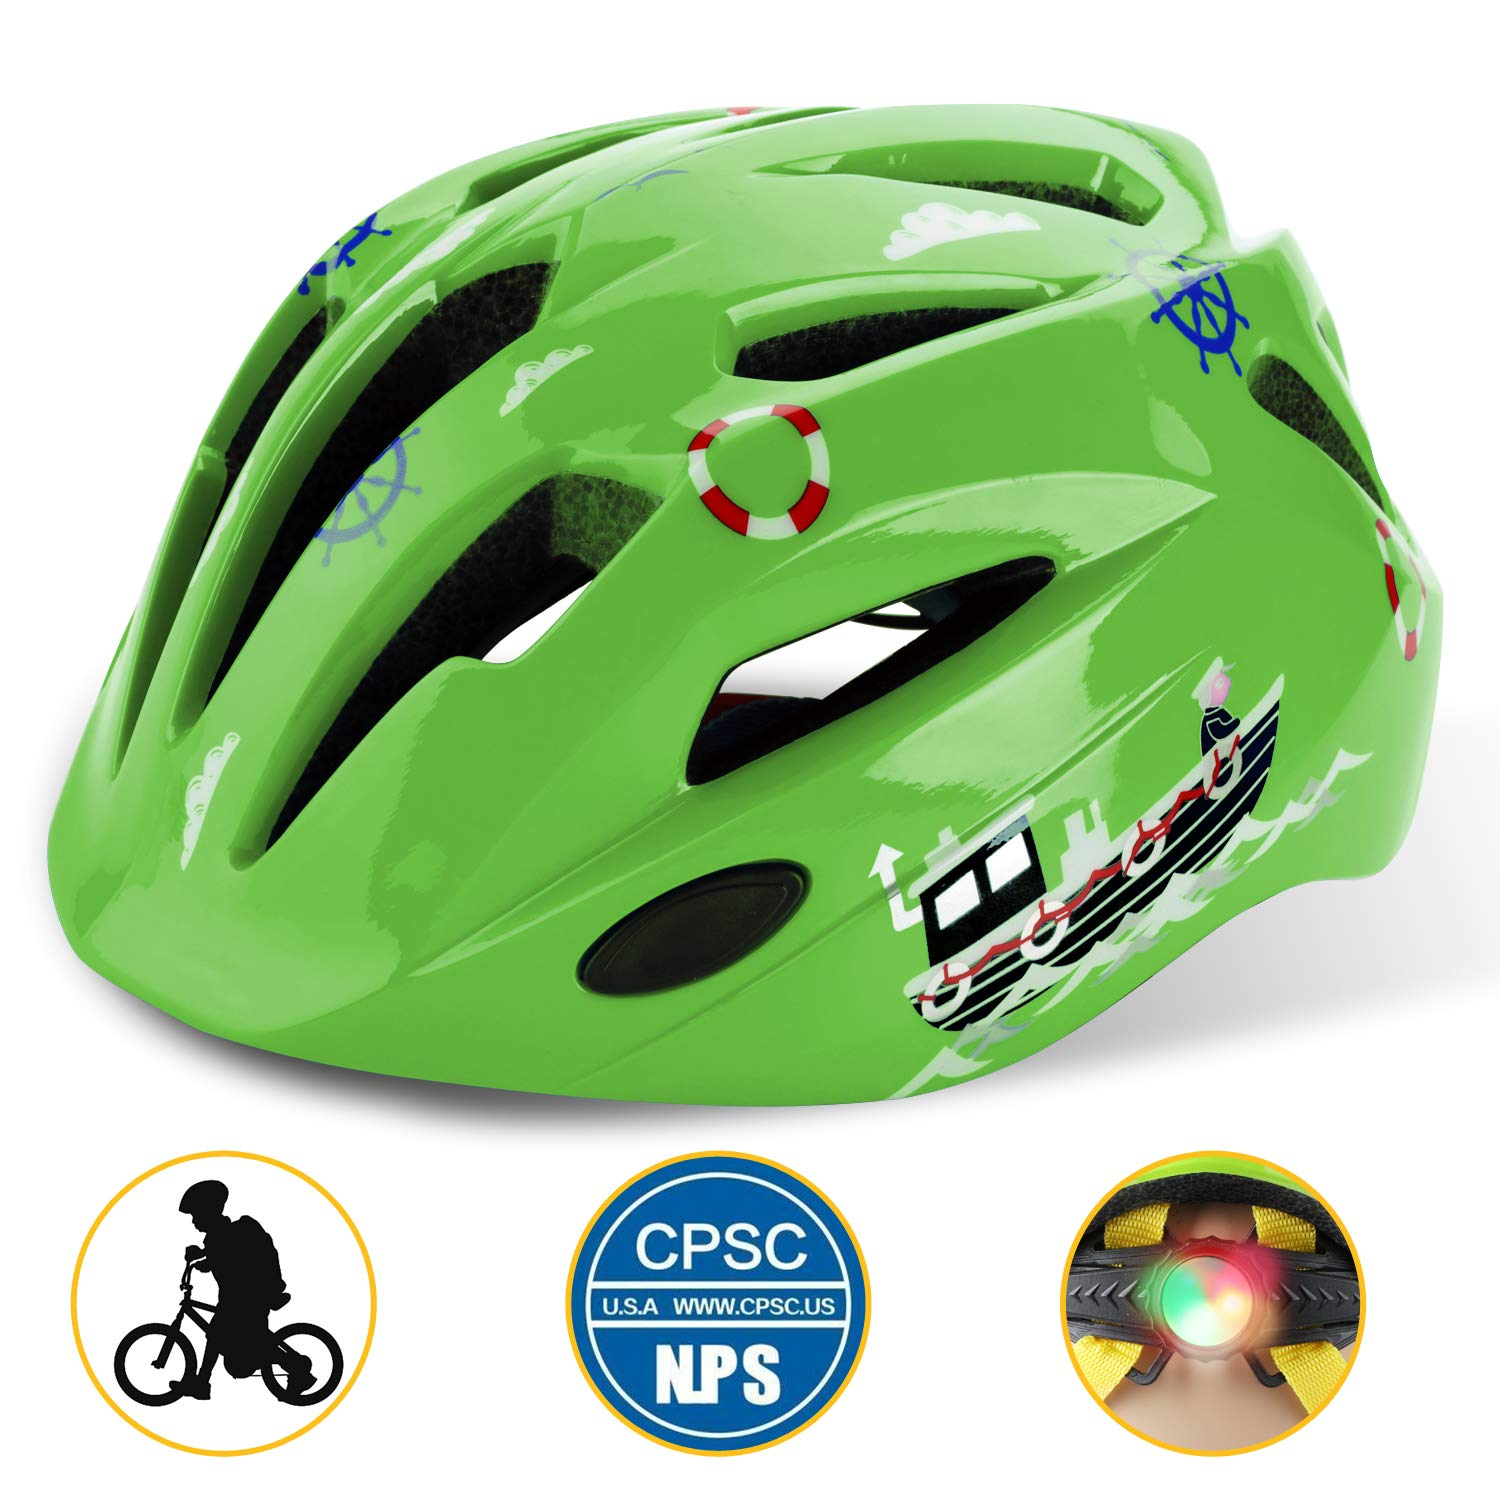 Basecamp Kids Bike Helmet, Children Cycling Helmet CPC Safety Certified 3D Cartoon Infant/Toddler Helmet Skating Boys&Girls Riding Scooter Safety Protective (Green) by Shinmax